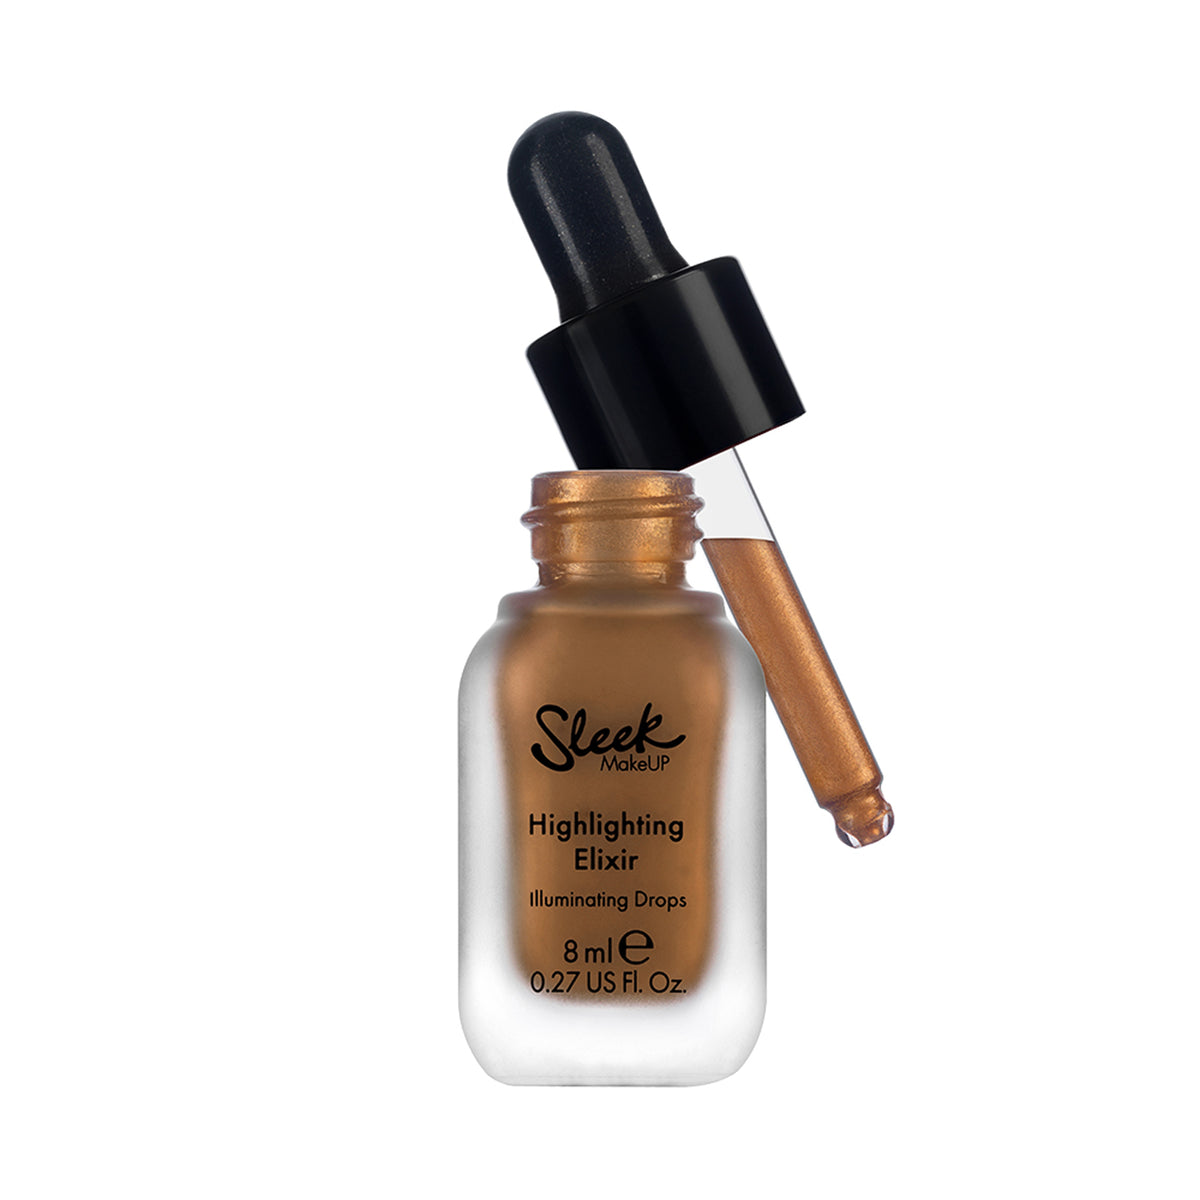 Sleek Highlighting Elixir - Sun.Lit